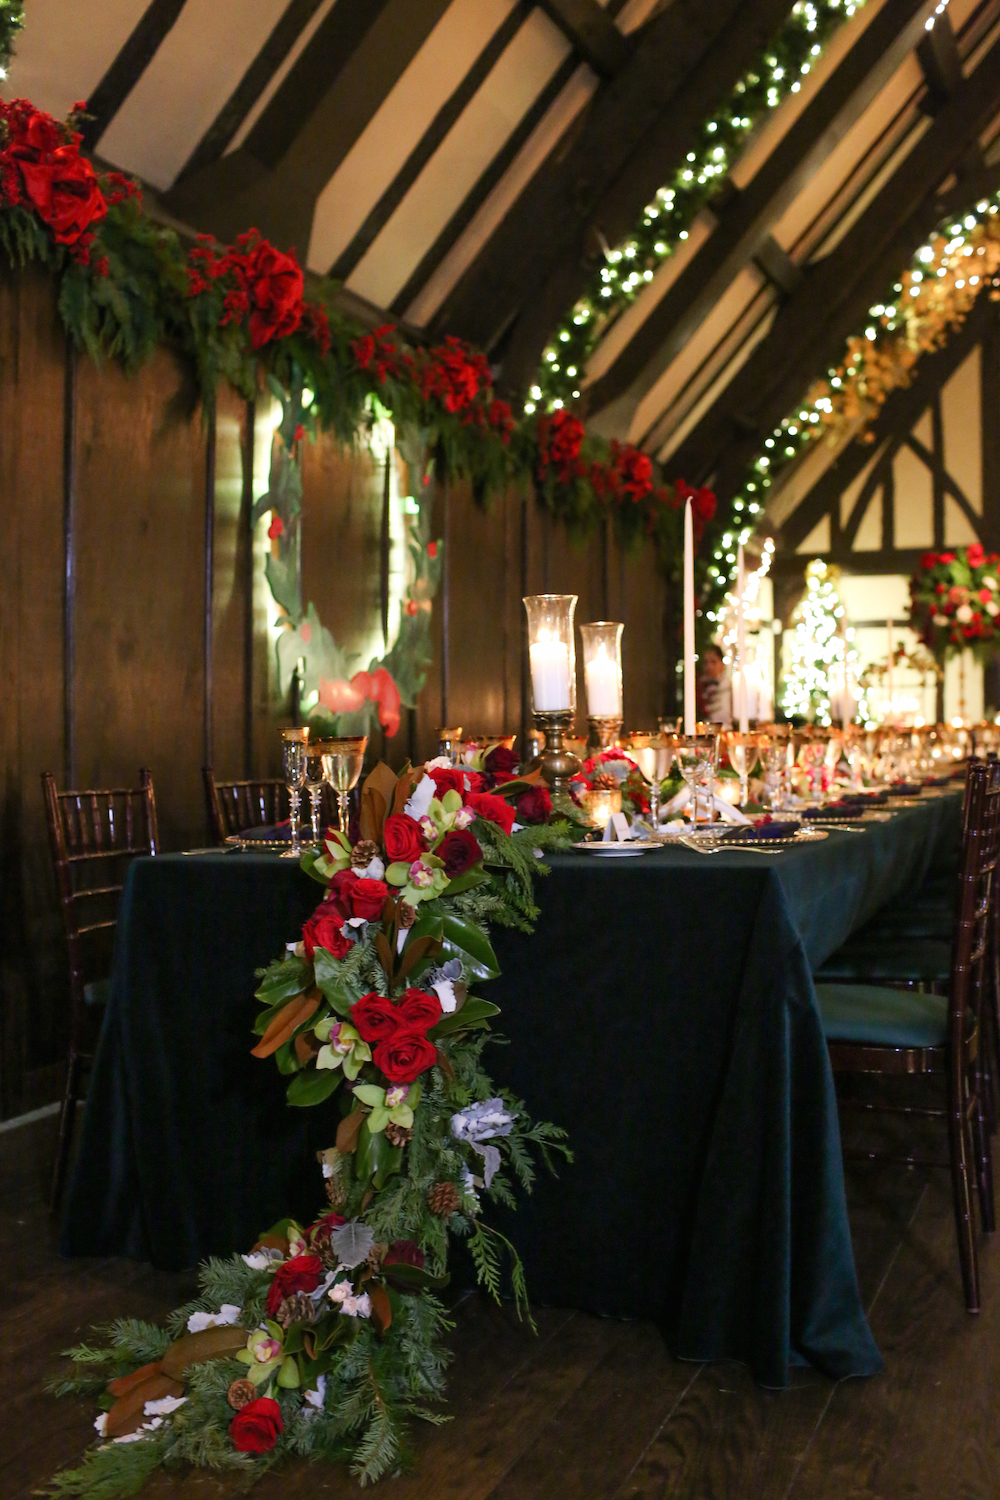 red roses, pine branches, pinecones, holiday season christmas wedding